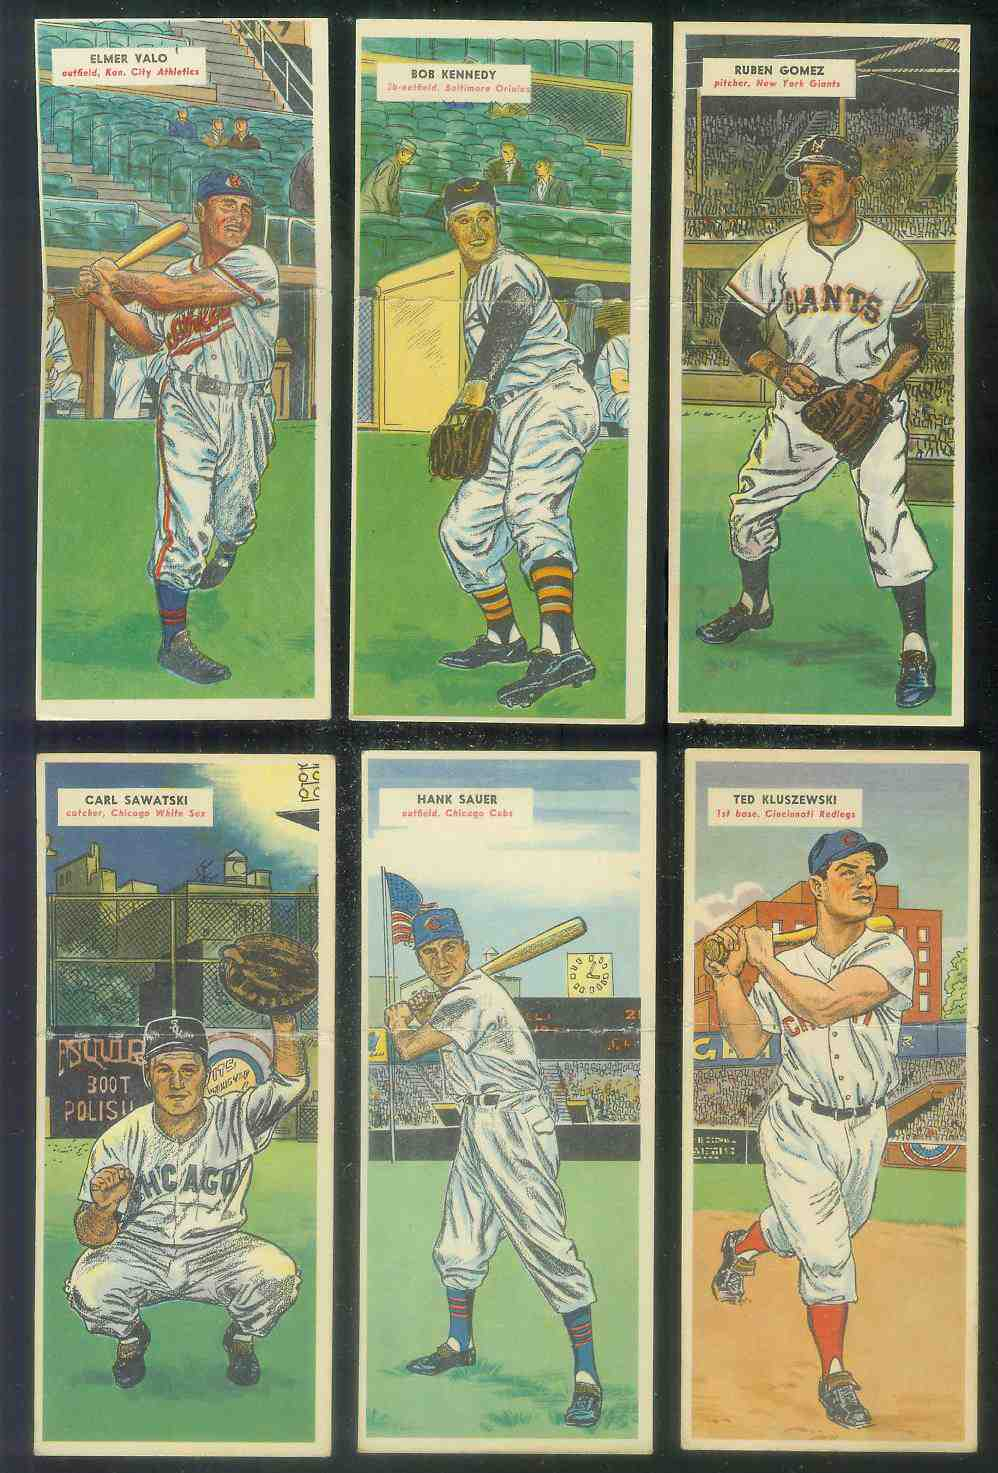 1955 Topps Double Header #.87 Bob Kennedy / #88 Windy McCall [#x] Baseball cards value